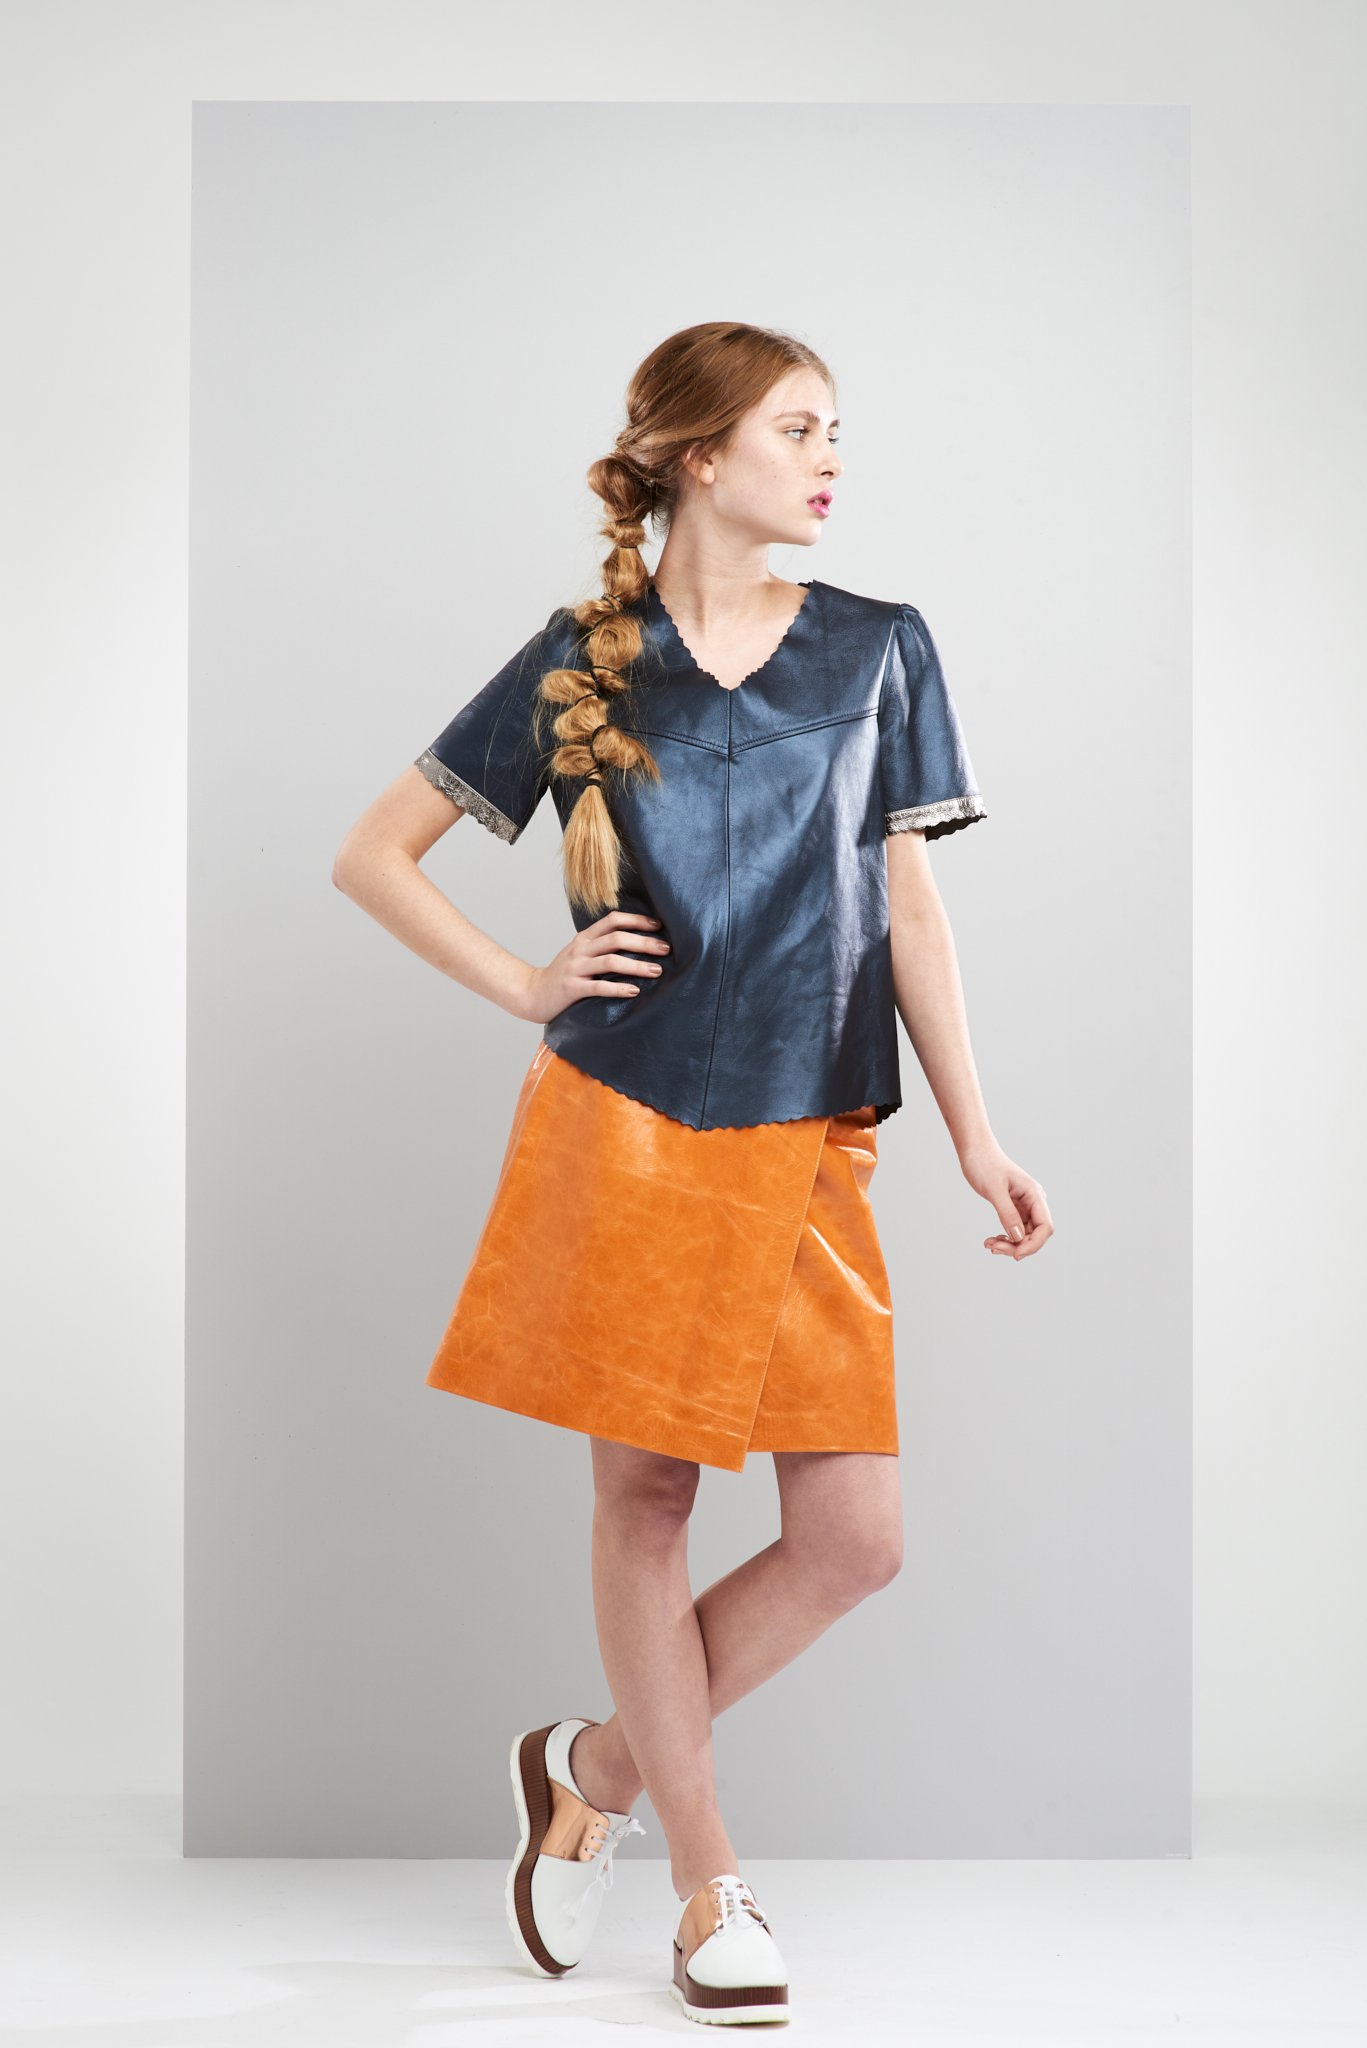 67797ea1e0 Women's Skirts   New Collection Online   ZARA United States